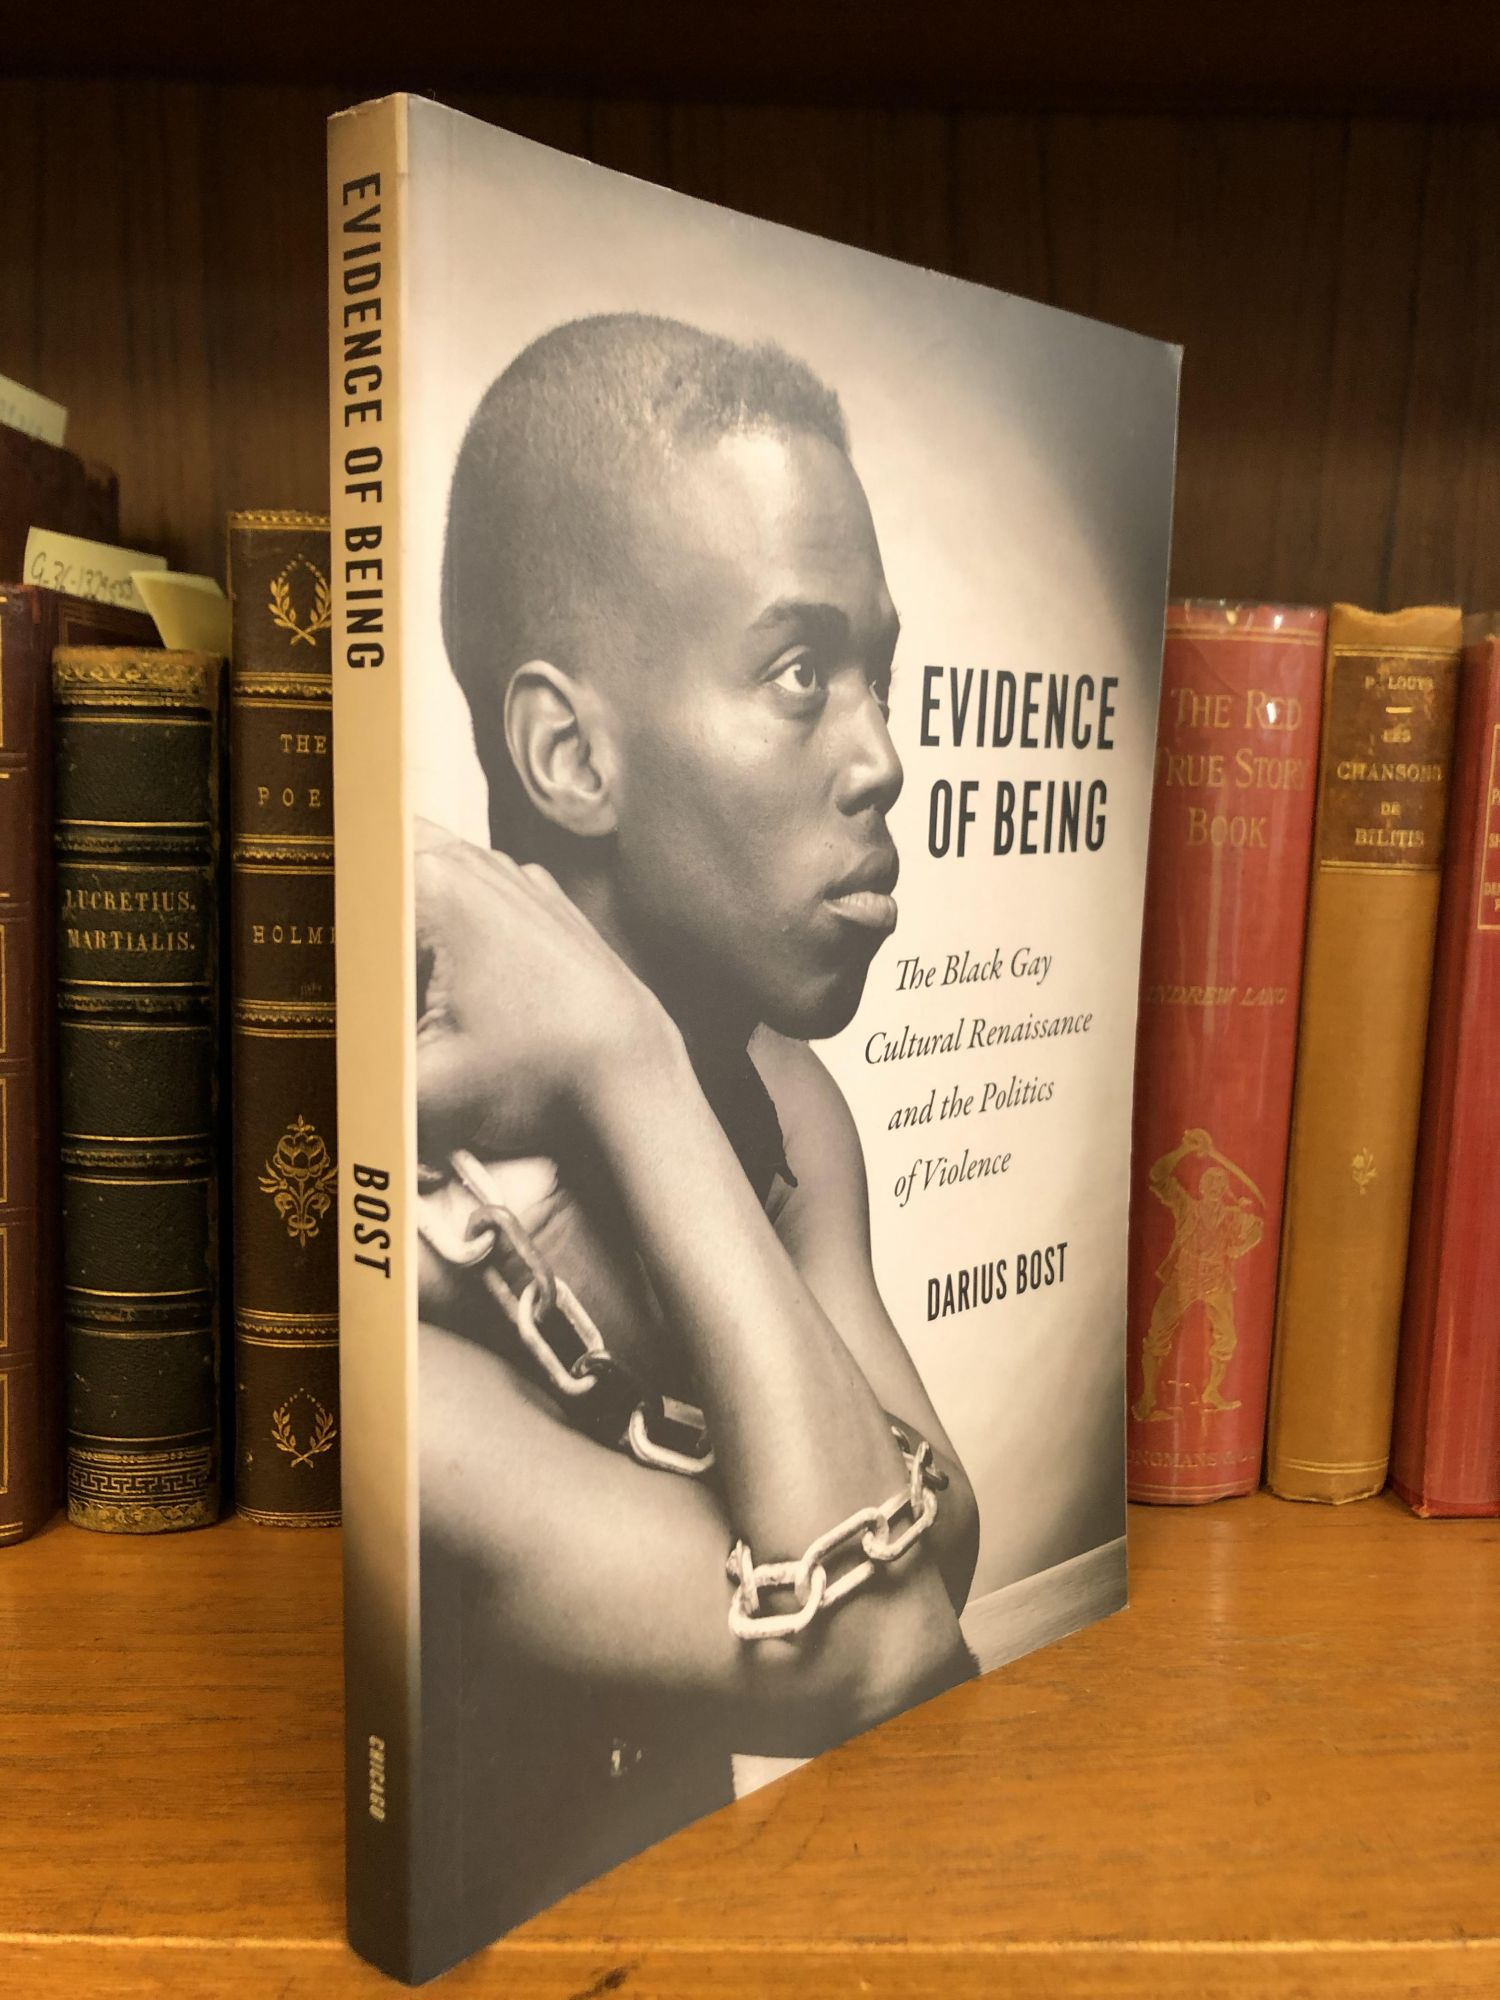 EVIDENCE OF BEING: THE BLACK GAY CULTURAL RENAISSANCE AND THE POLITICS OF VIOLENCE. Darius Bost.